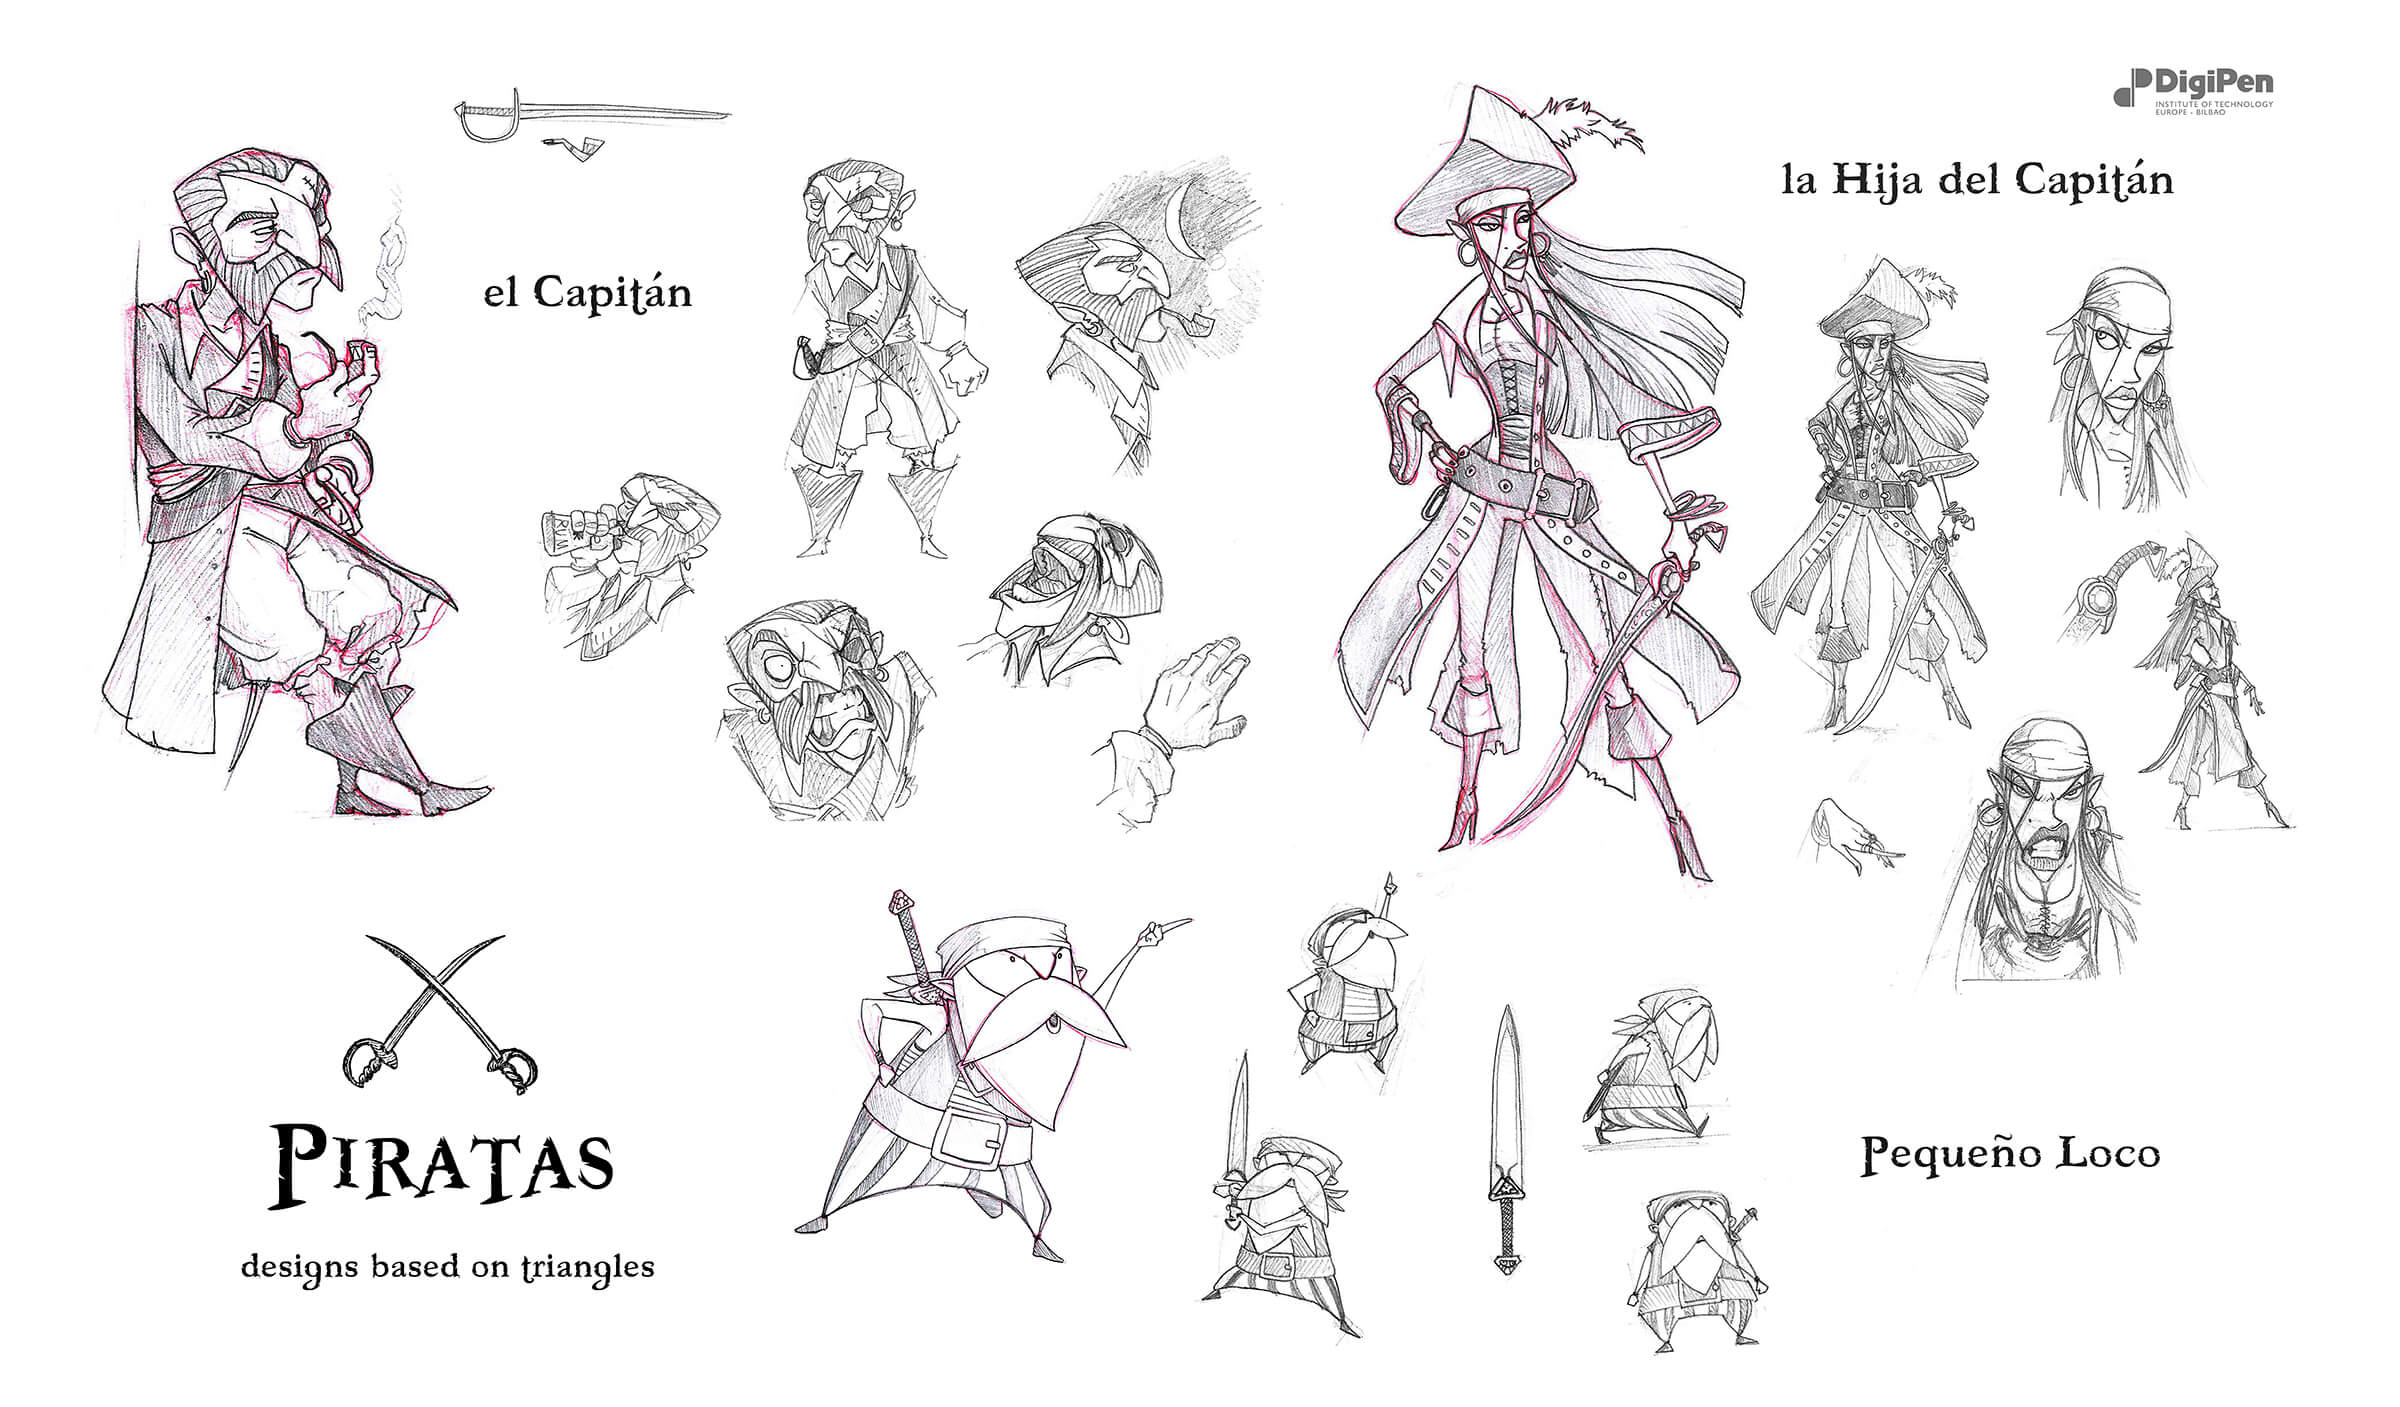 Black-and-white sketches of a pirate captain, his sword-wielding daughter, and an old, short pirate.